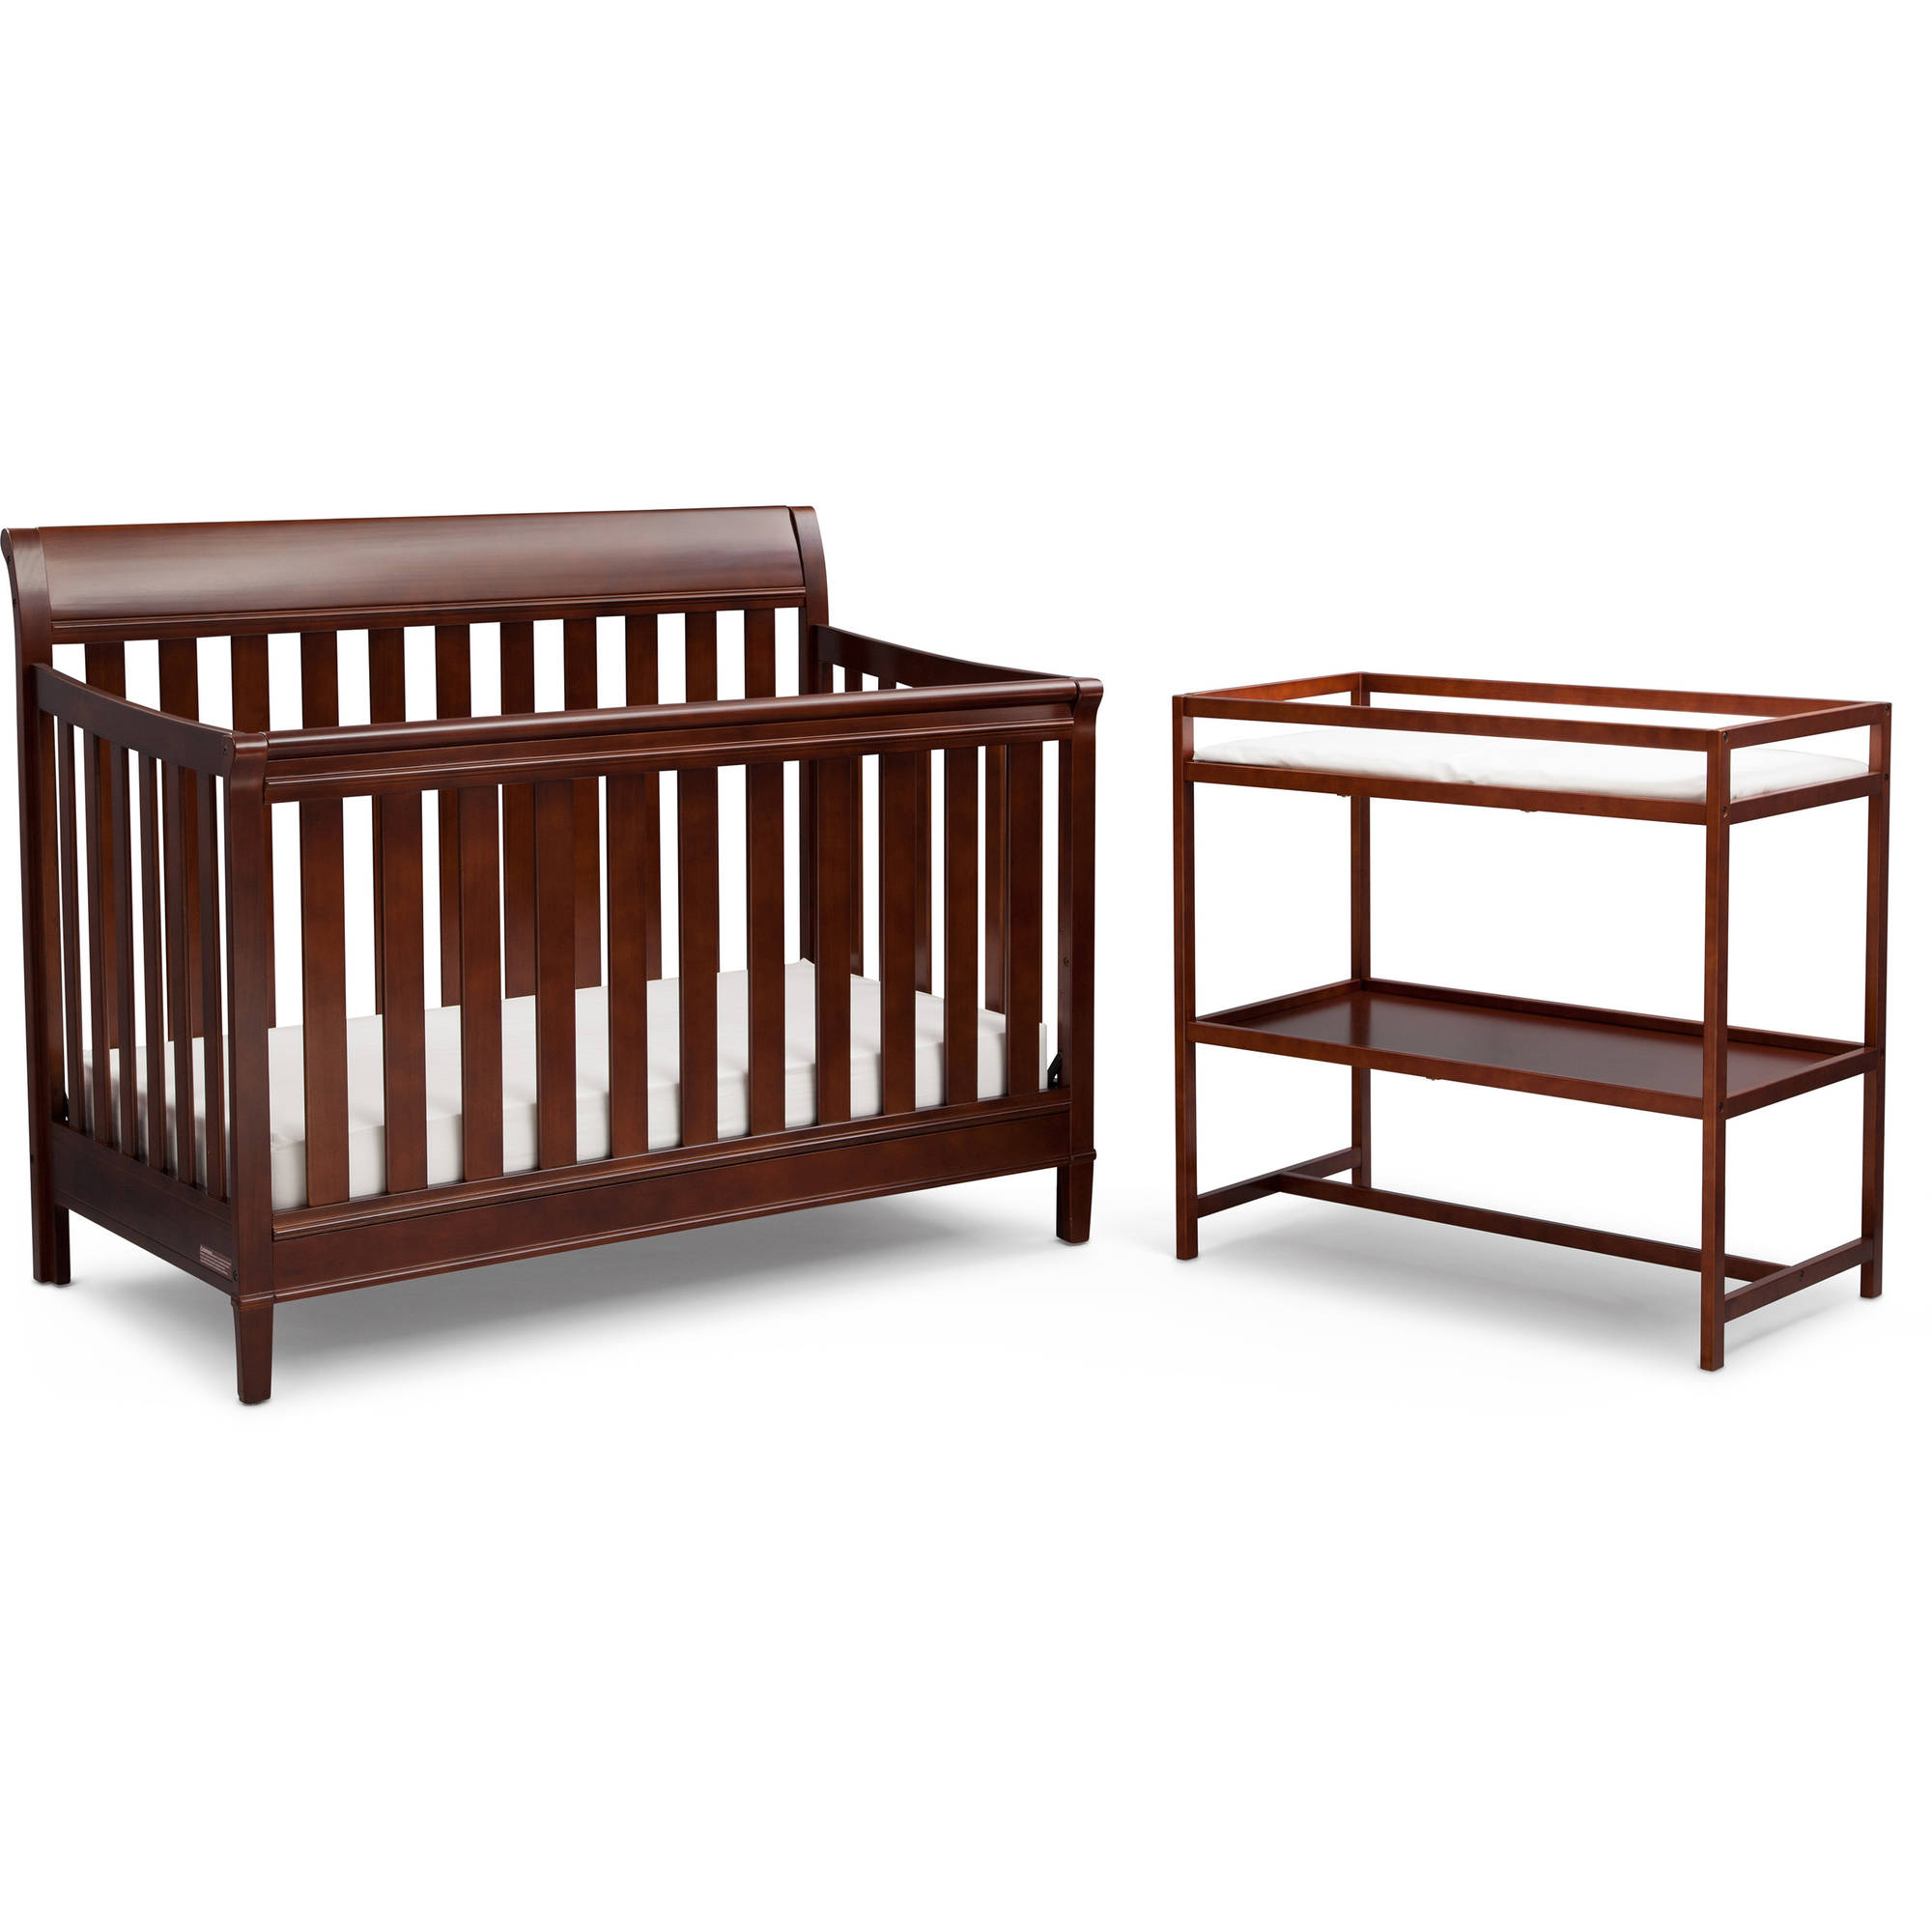 Crib changing table dresser set walmart walmart baby for Baby furniture